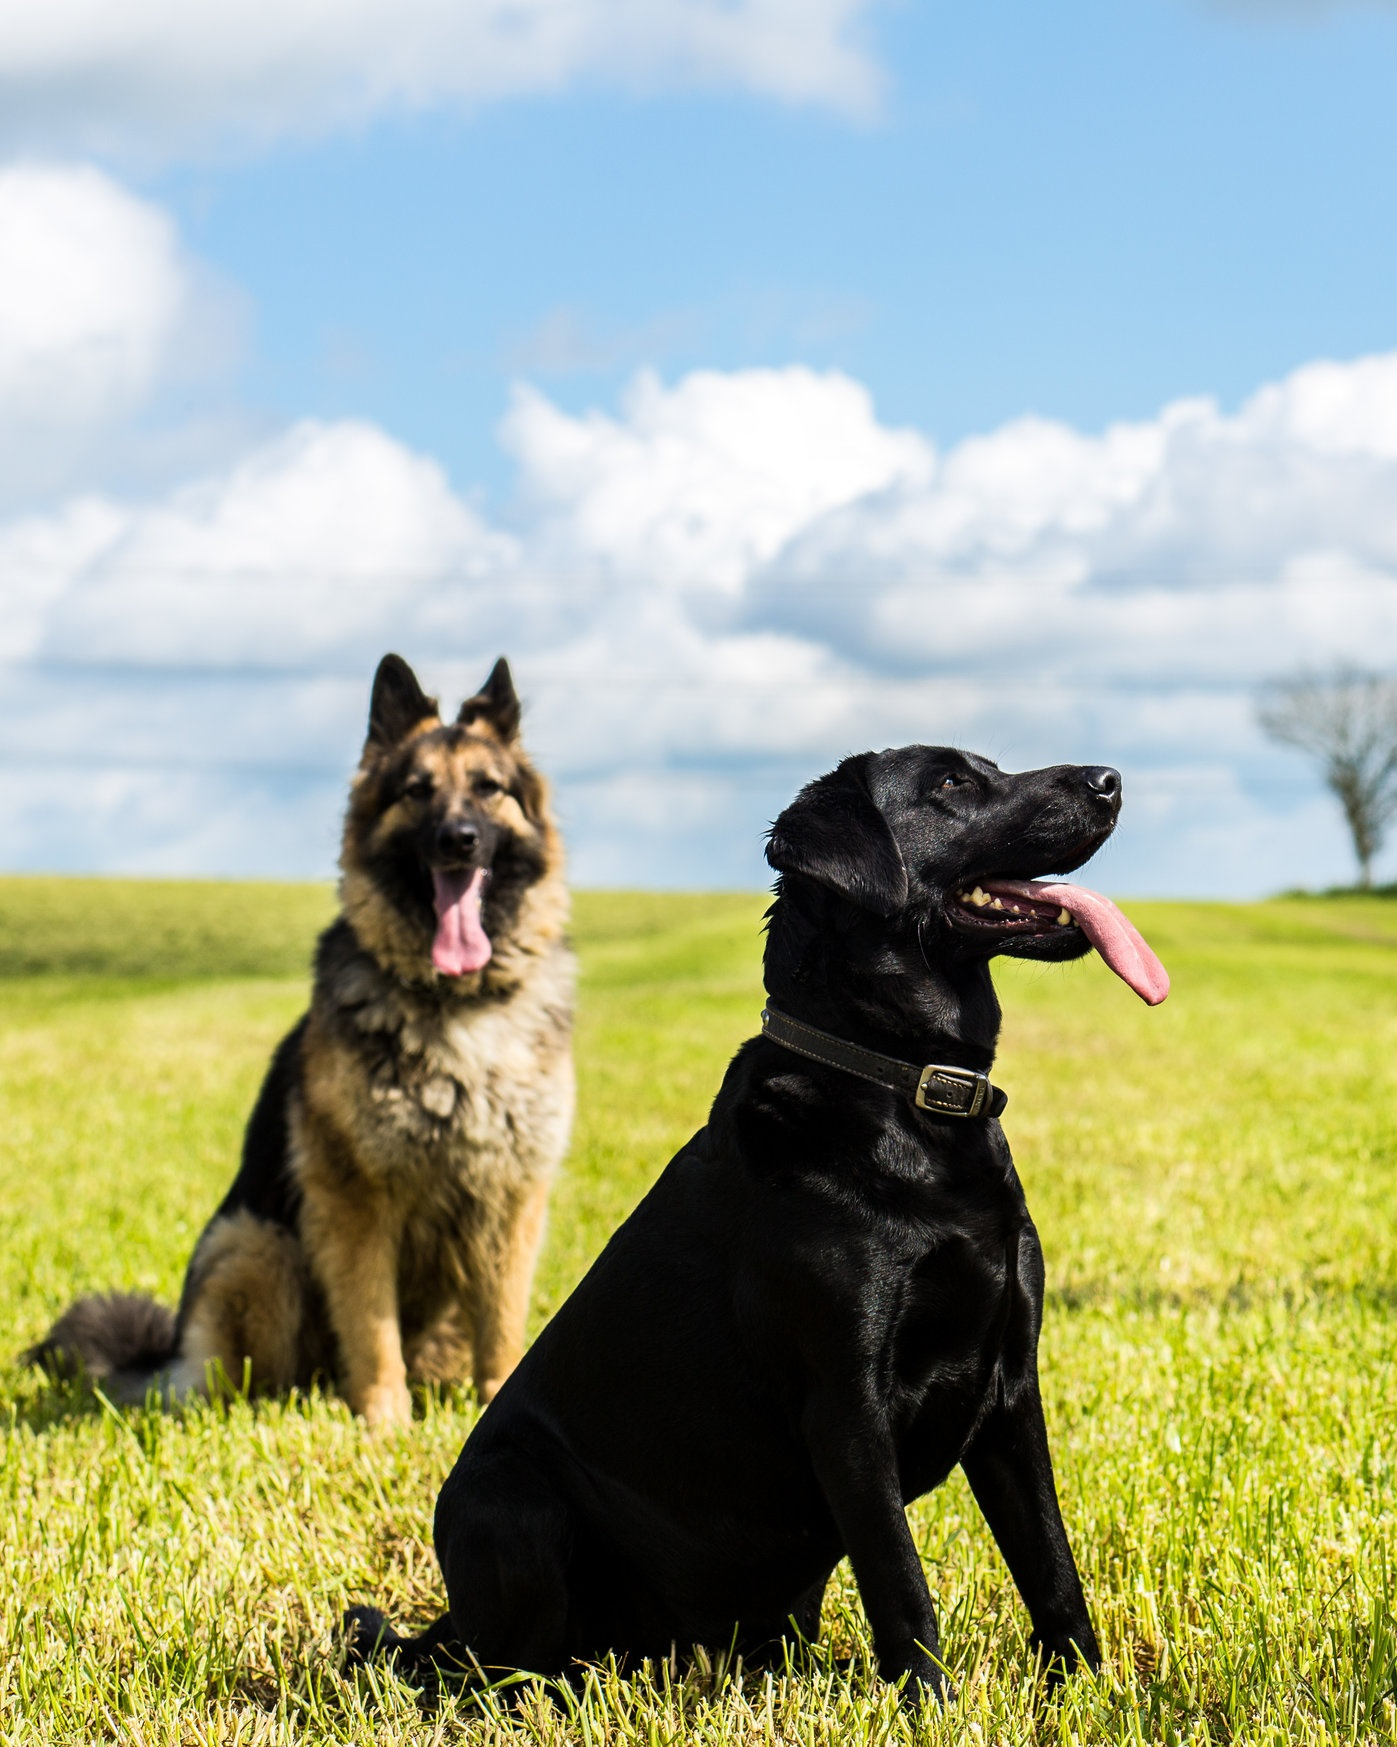 Beth the Black Labrador and Kikki the German Shepherd.